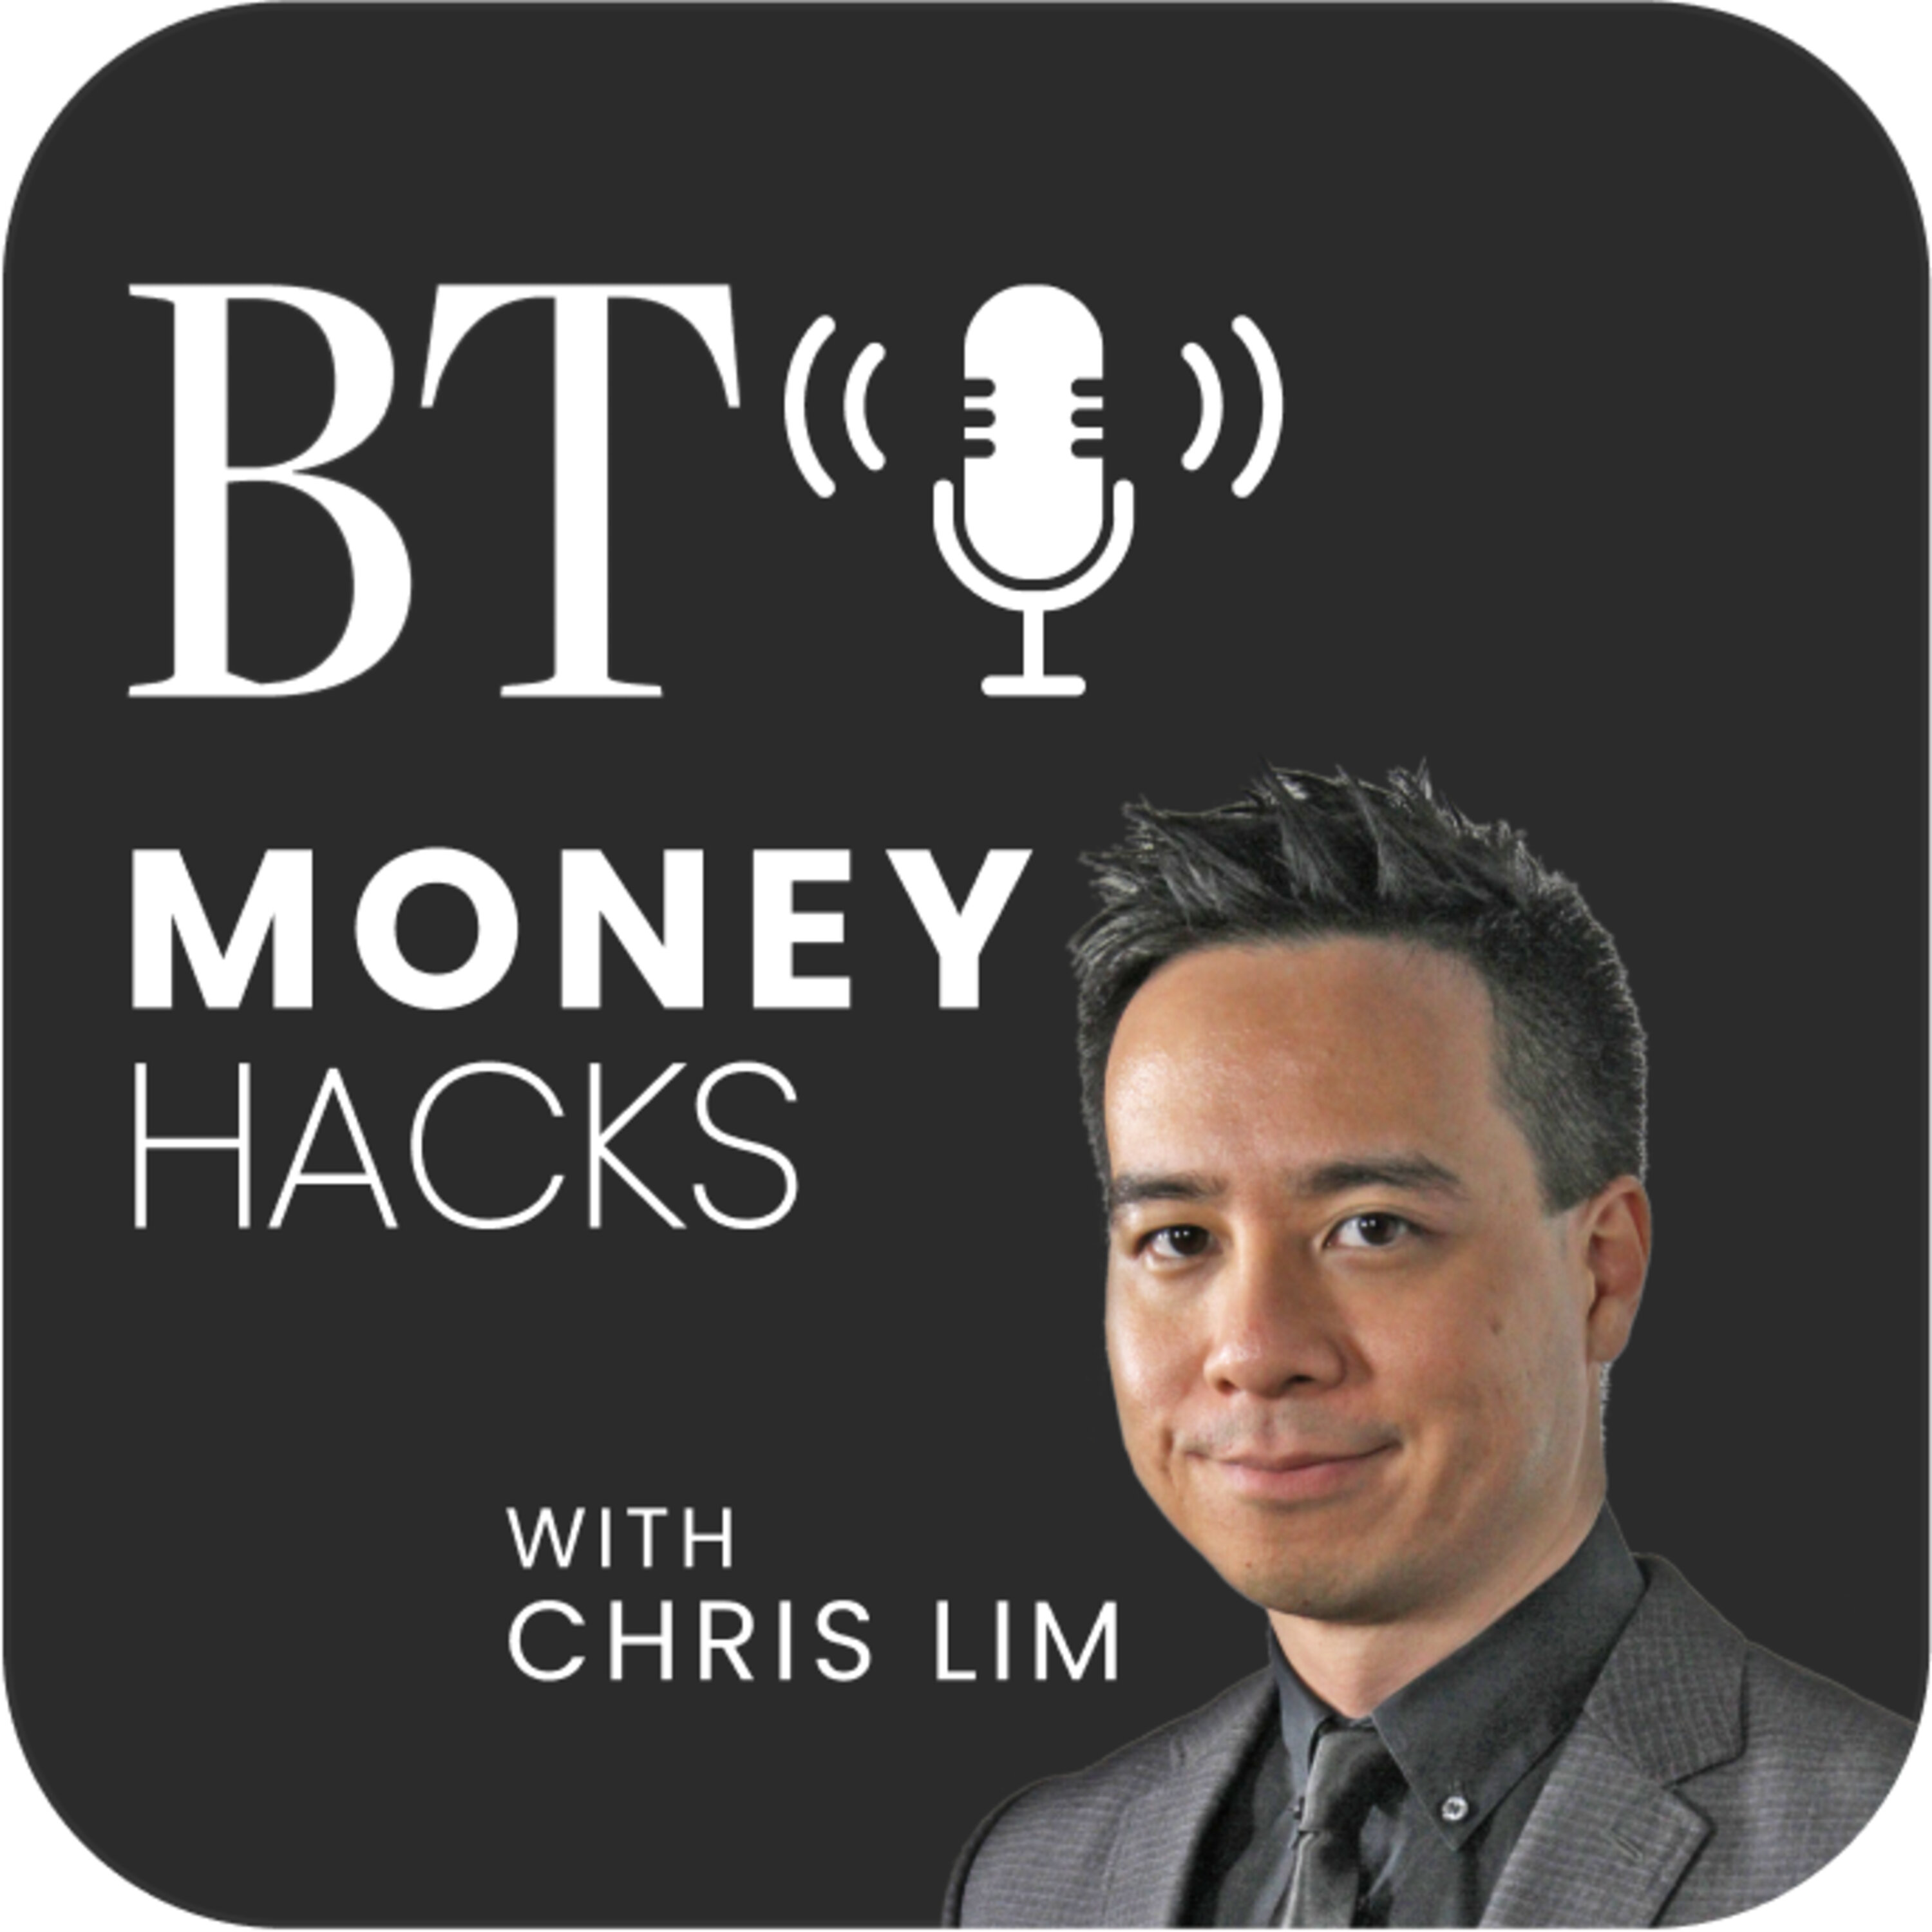 Asia's ESG investing outlook in 2021 and beyond: BT Money Hacks Ep 92